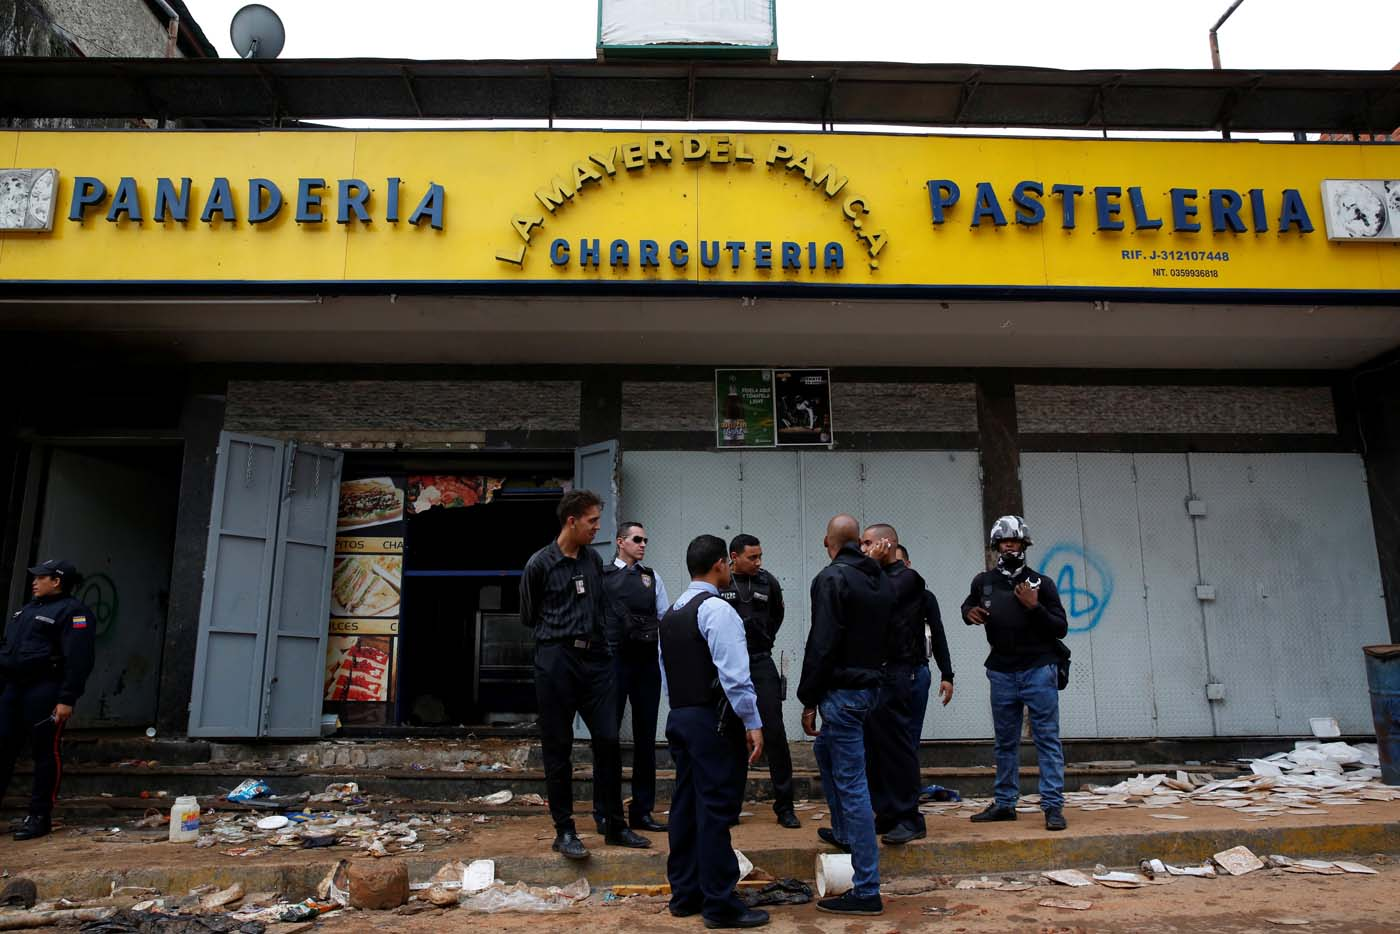 REFILE - UPDATING SLUG Police officers and criminal investigators stand in front of a bakery, after it was looted in Caracas, Venezuela April 21, 2017. REUTERS/Carlos Garcia Rawlins